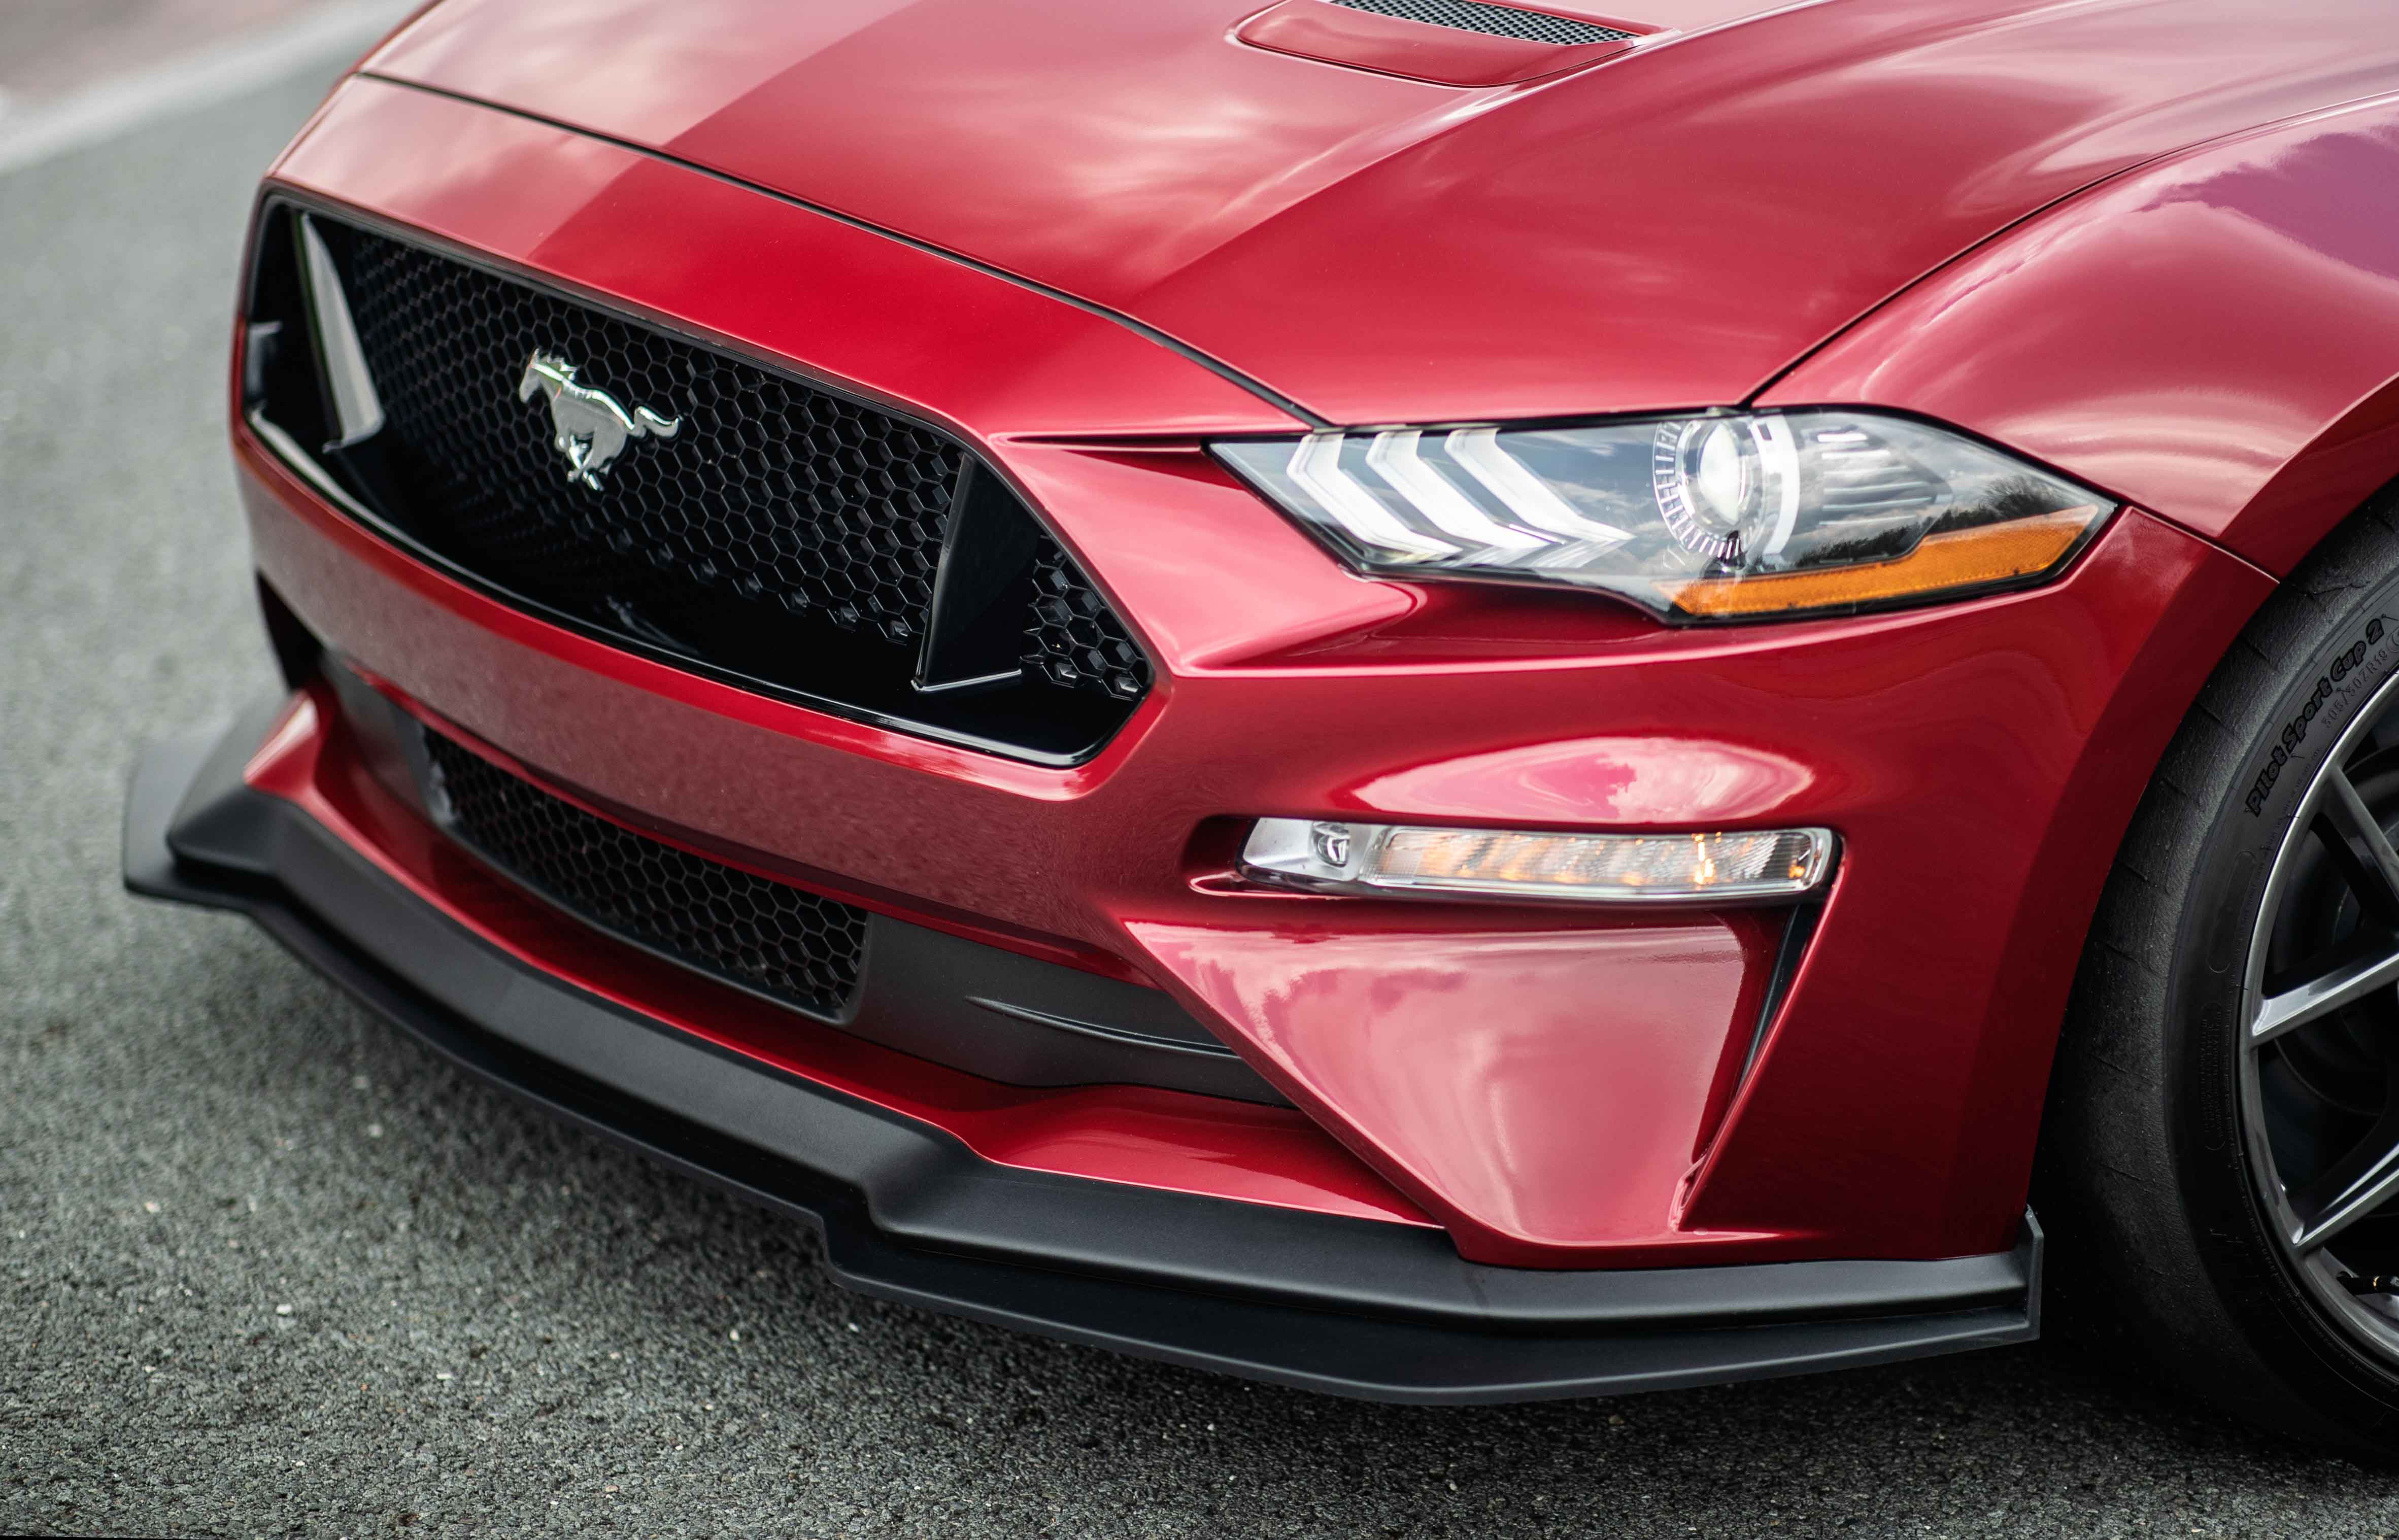 2018 Ford Mustang GT Performance Pack 2 grill